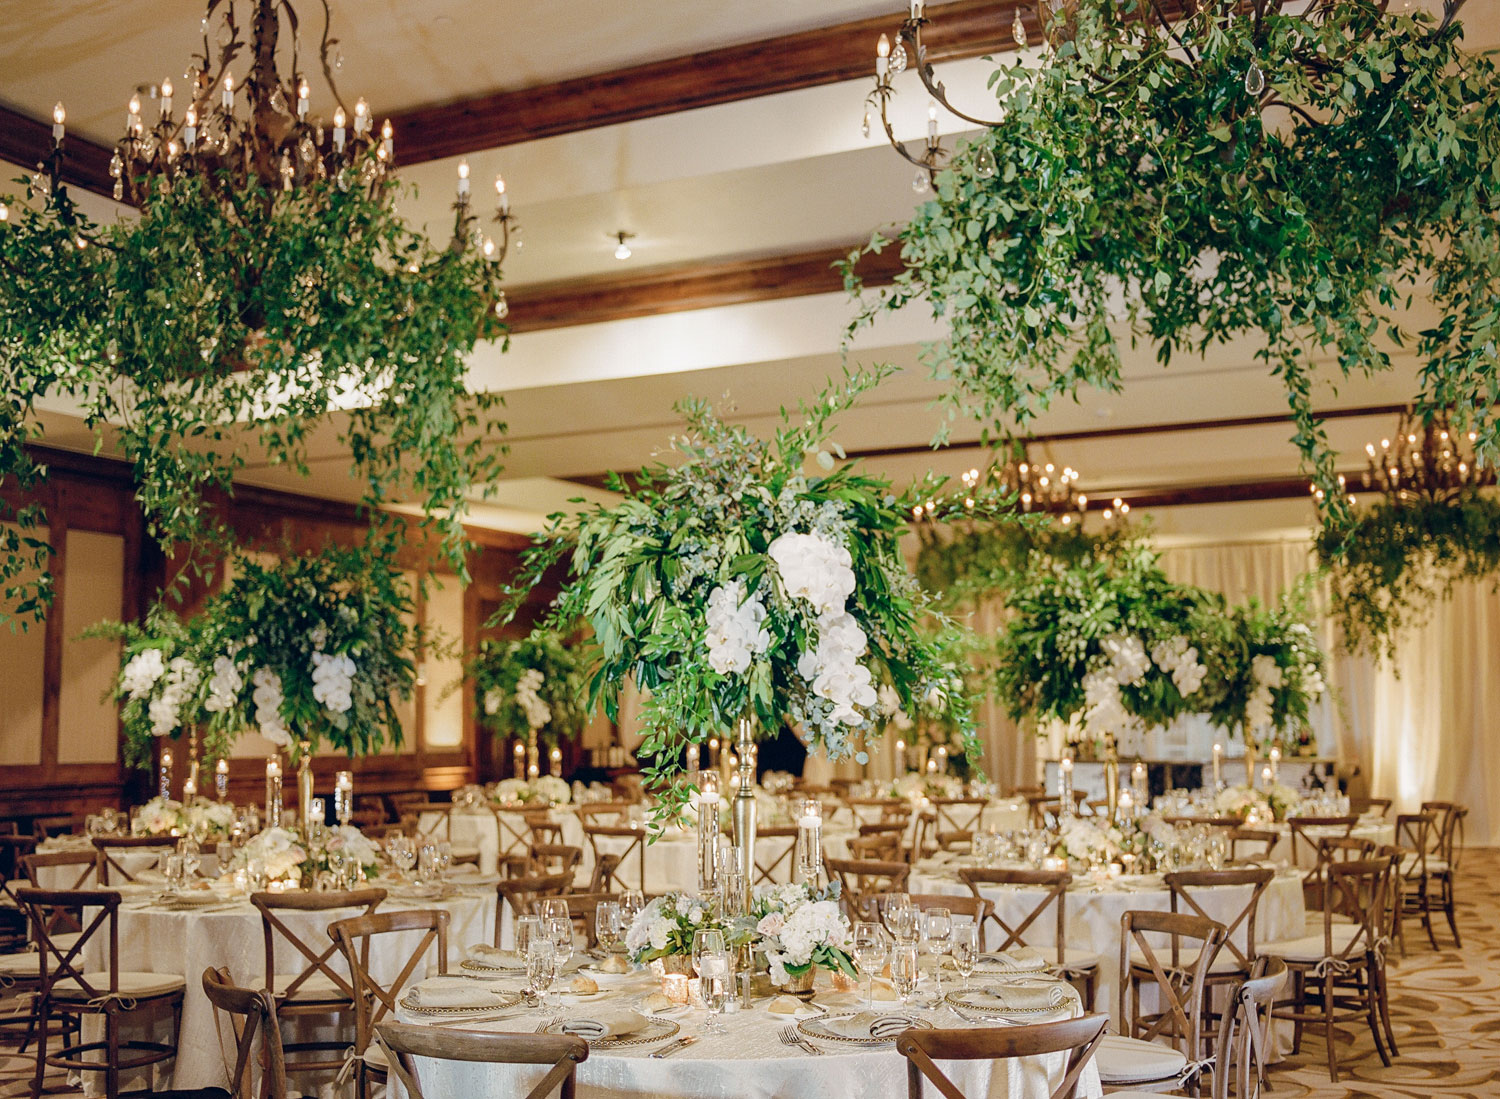 A Black Tie Reception in Beaver Creek, Colorado